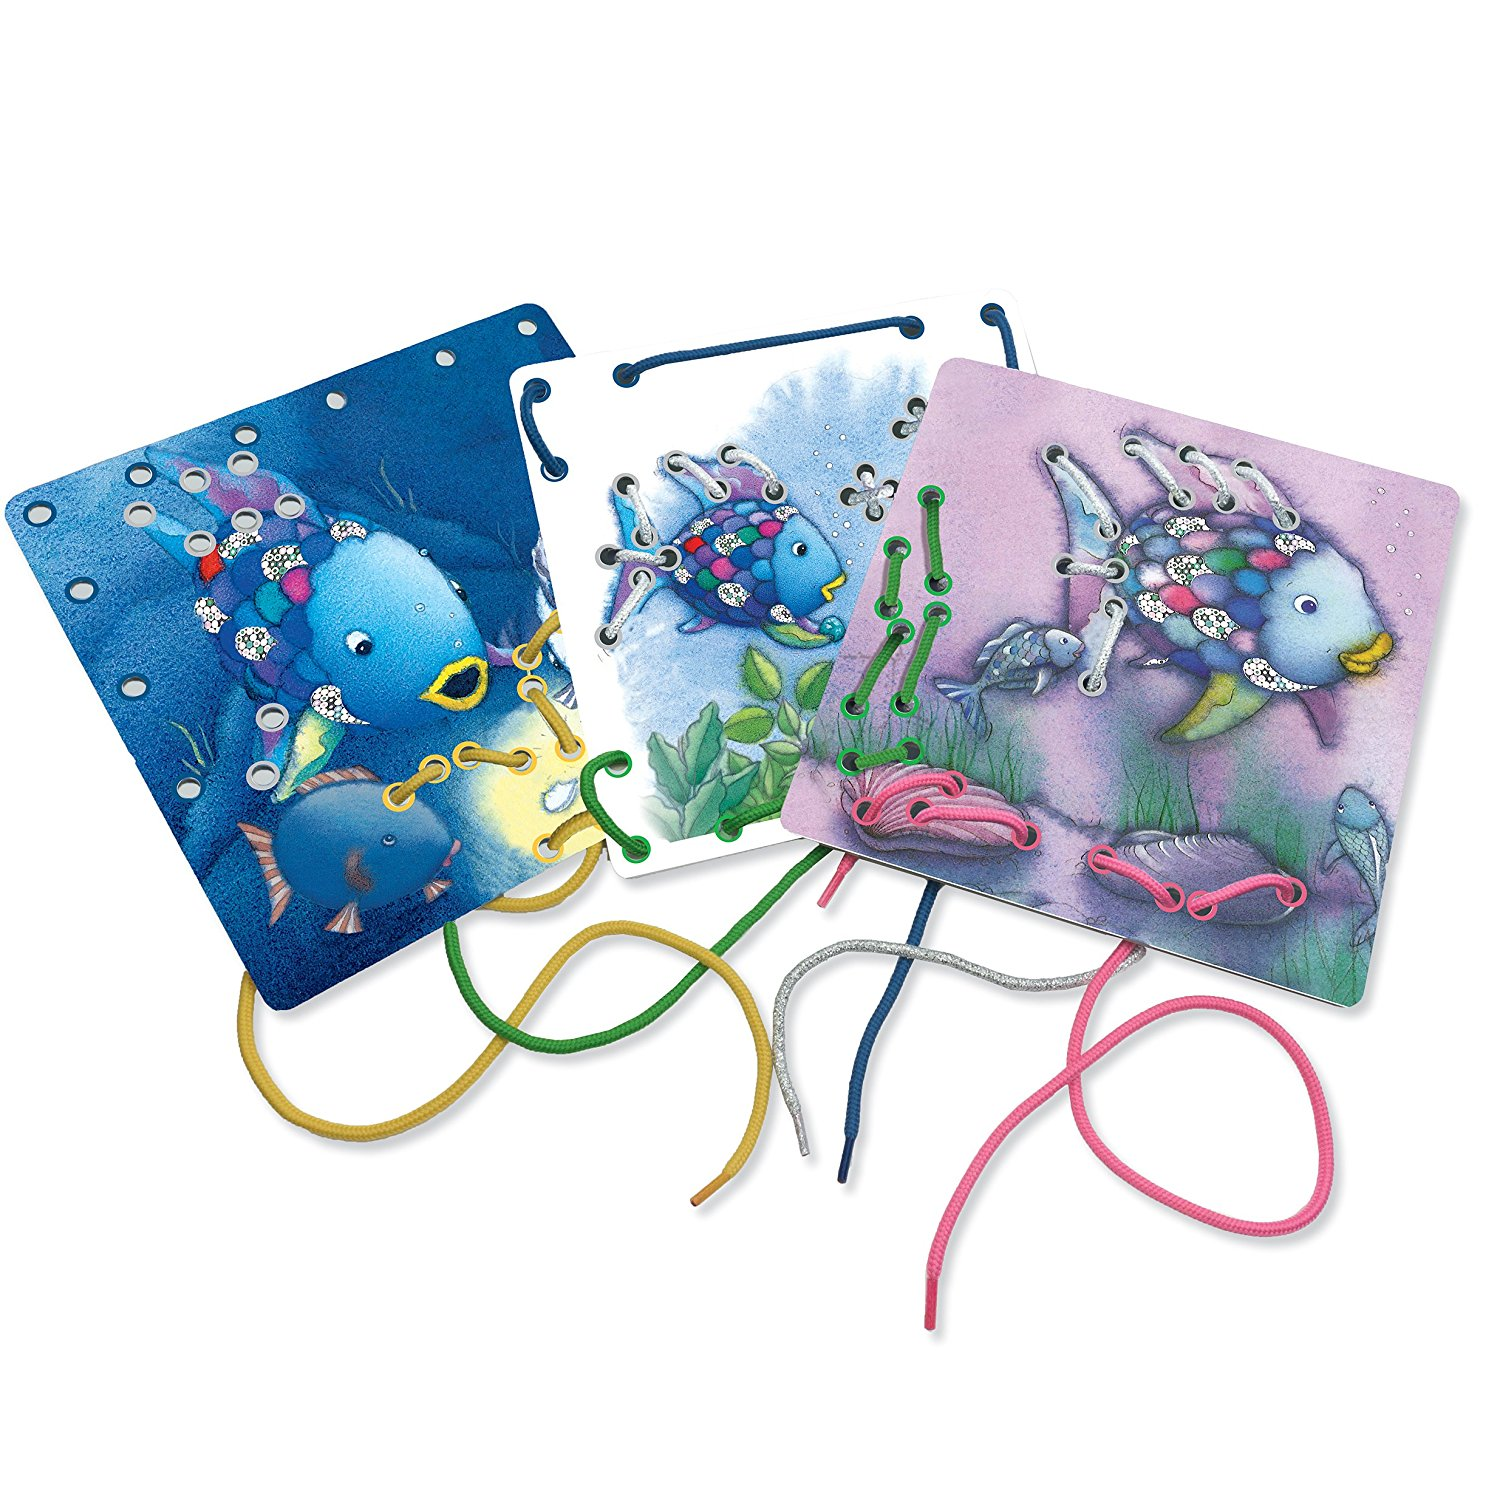 Rainbow Fish Lacing Cards, TOYS THAT TEACH: Children will love developing their fine motor skills, color recognition and manual dexterity with these beautiful.., By MindWare